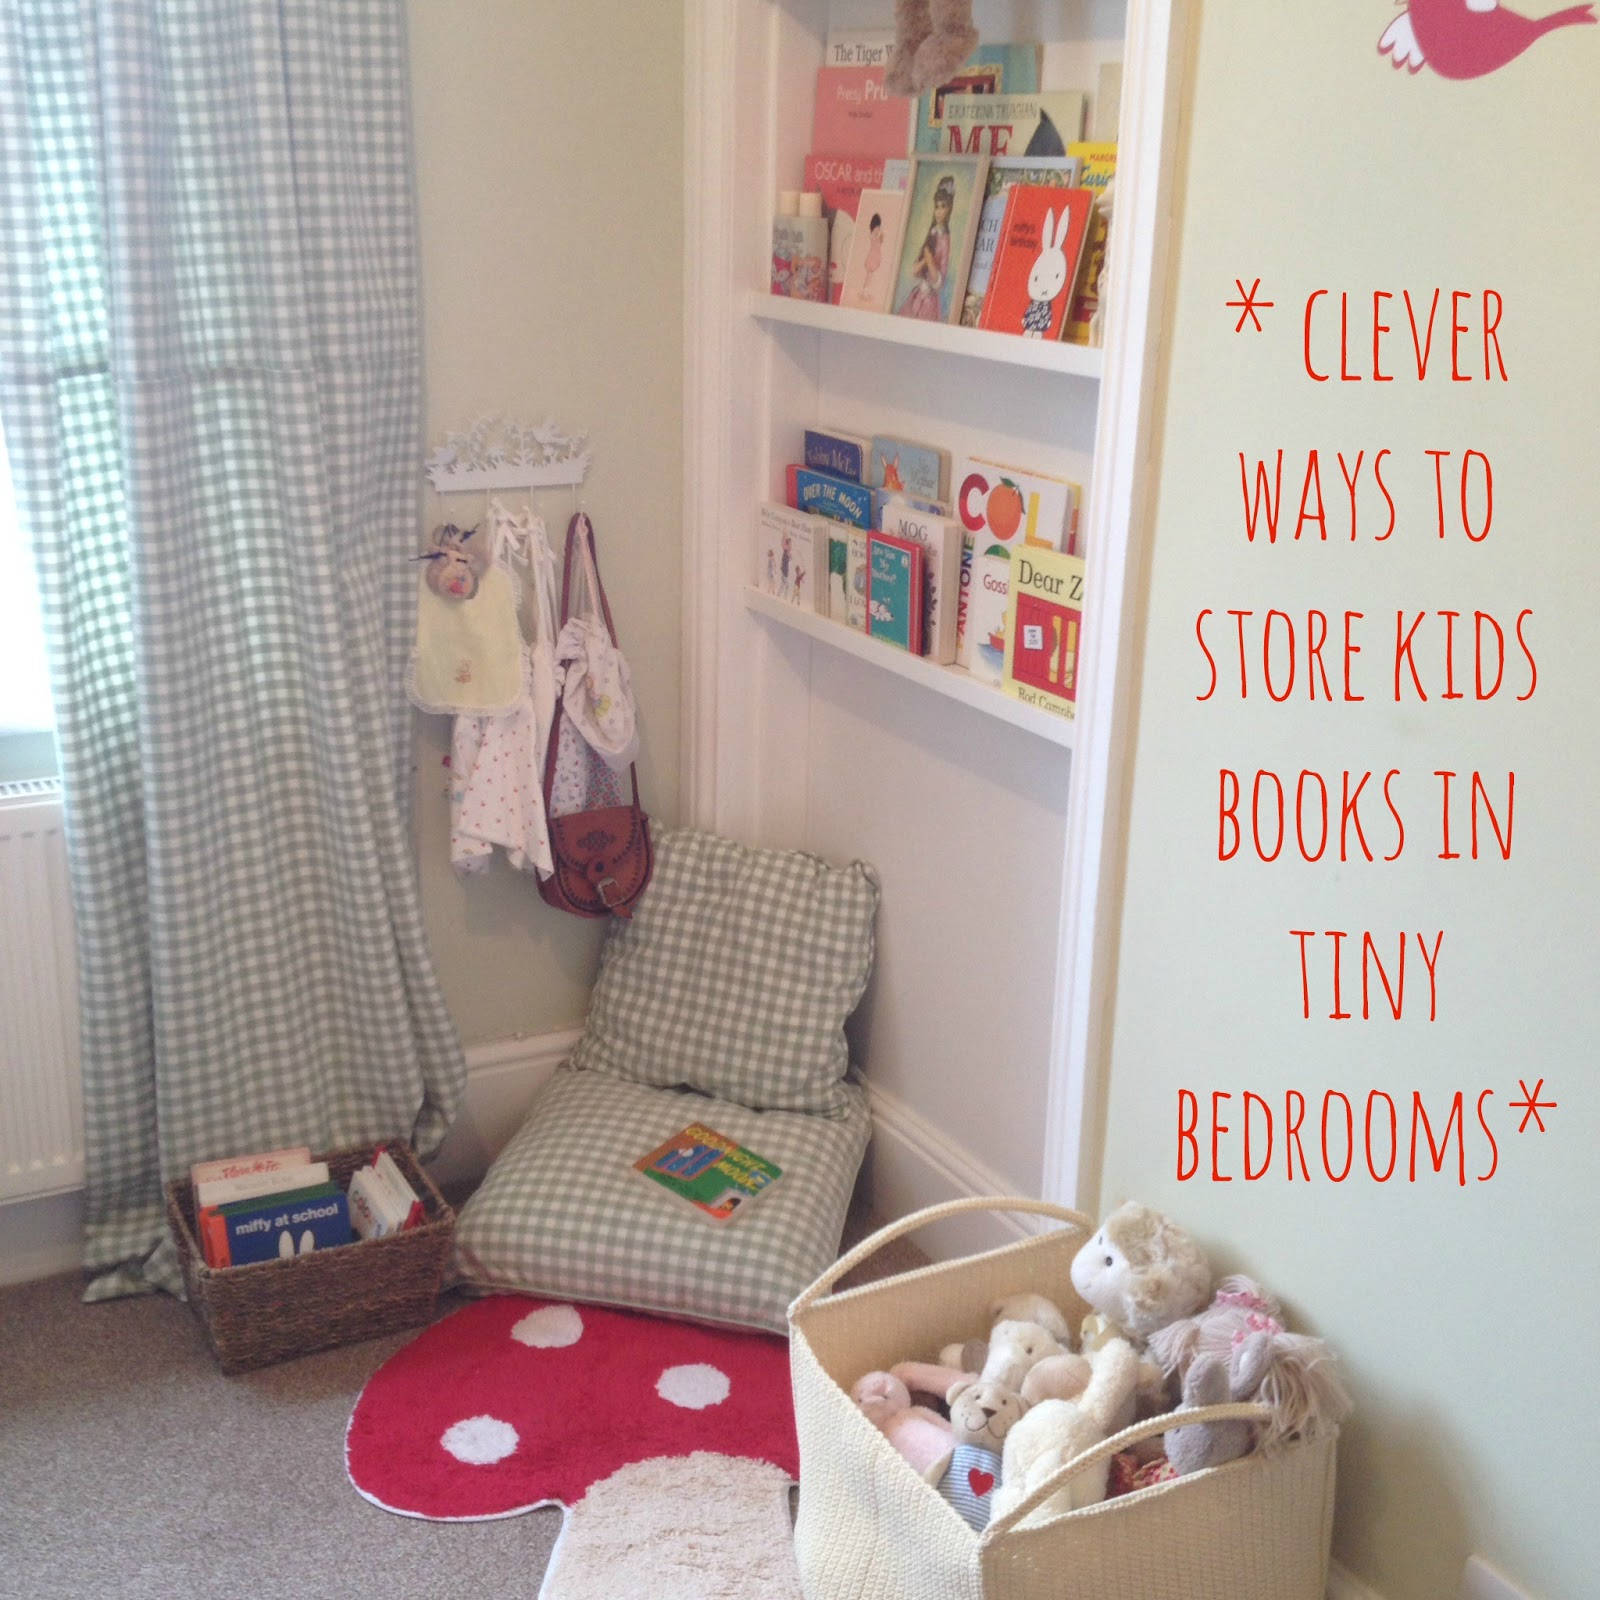 V. I. BEDROOM: Clever ways to store kids books in tiny bedrooms